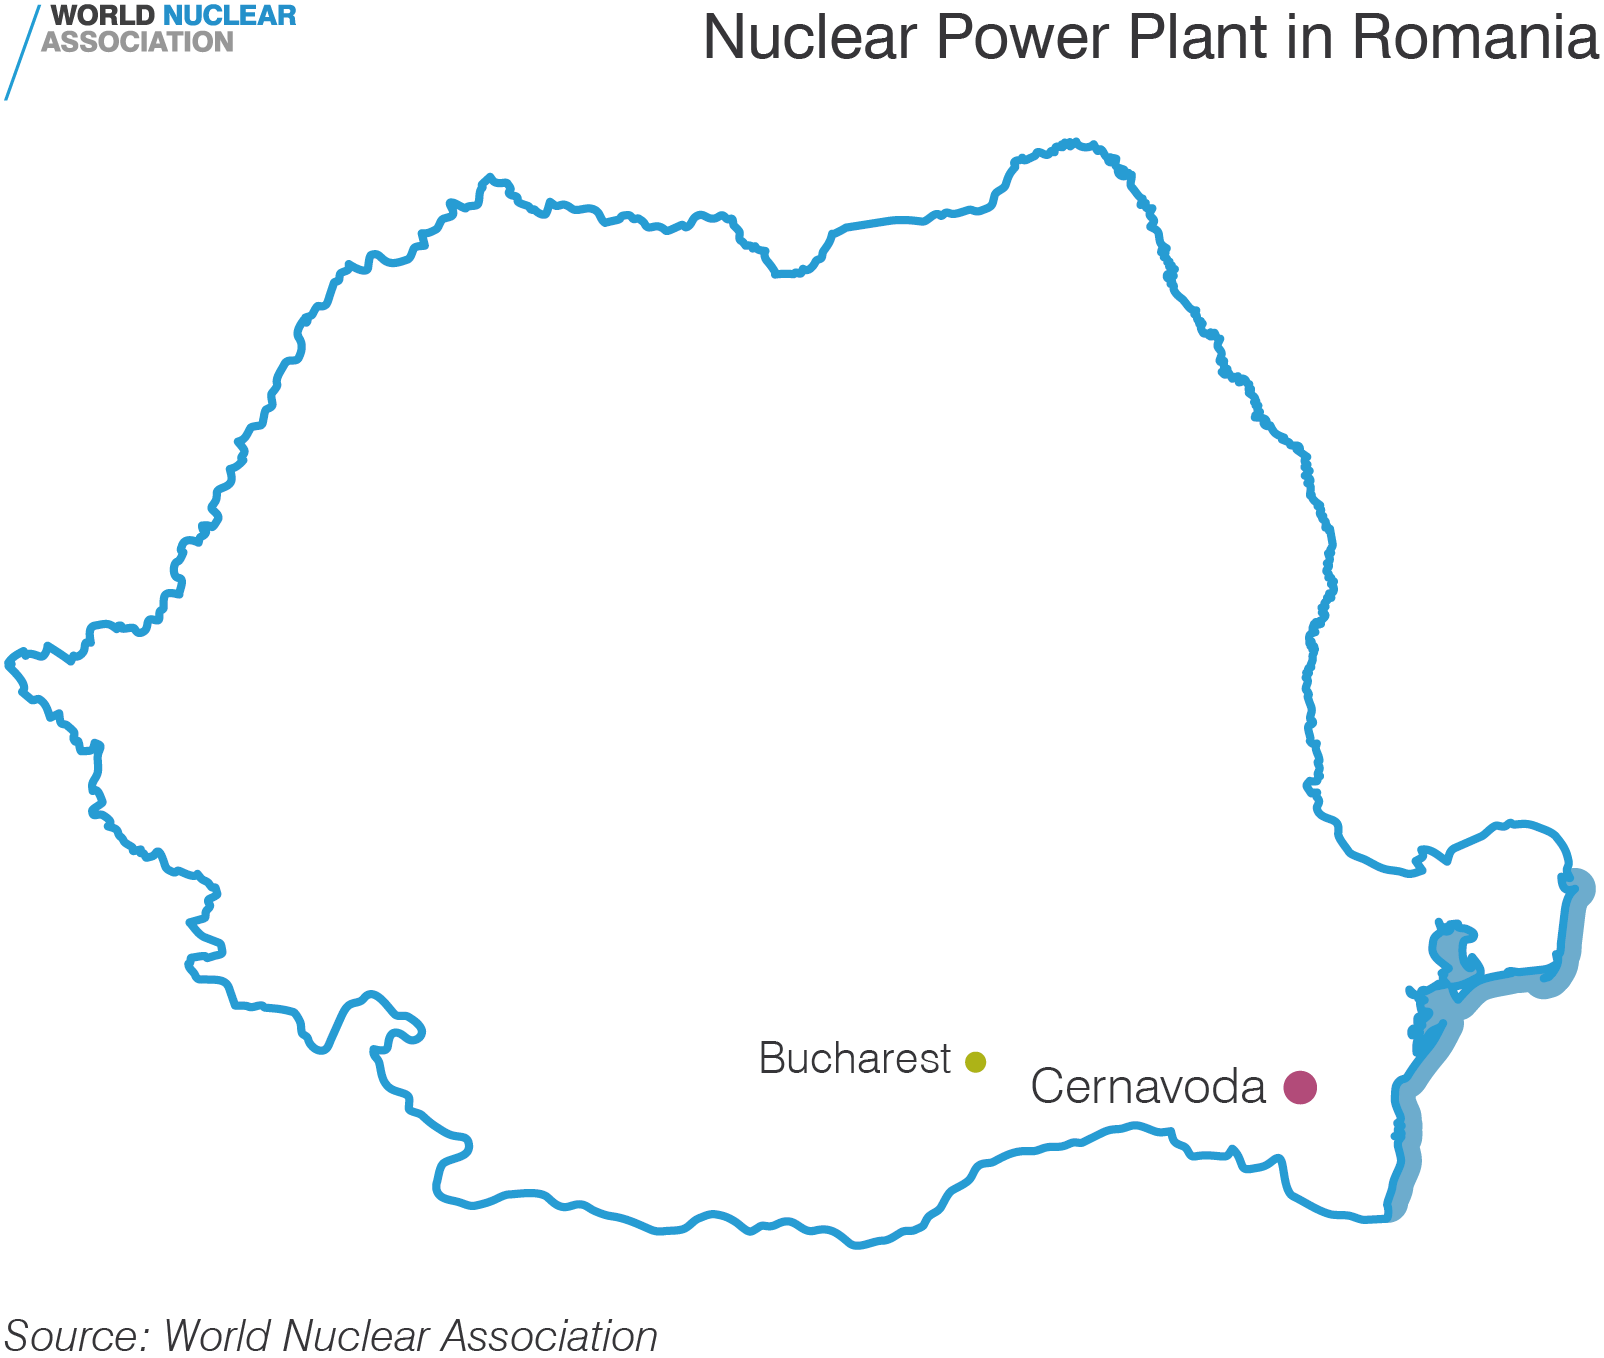 Nuclear Power Plant in Romania